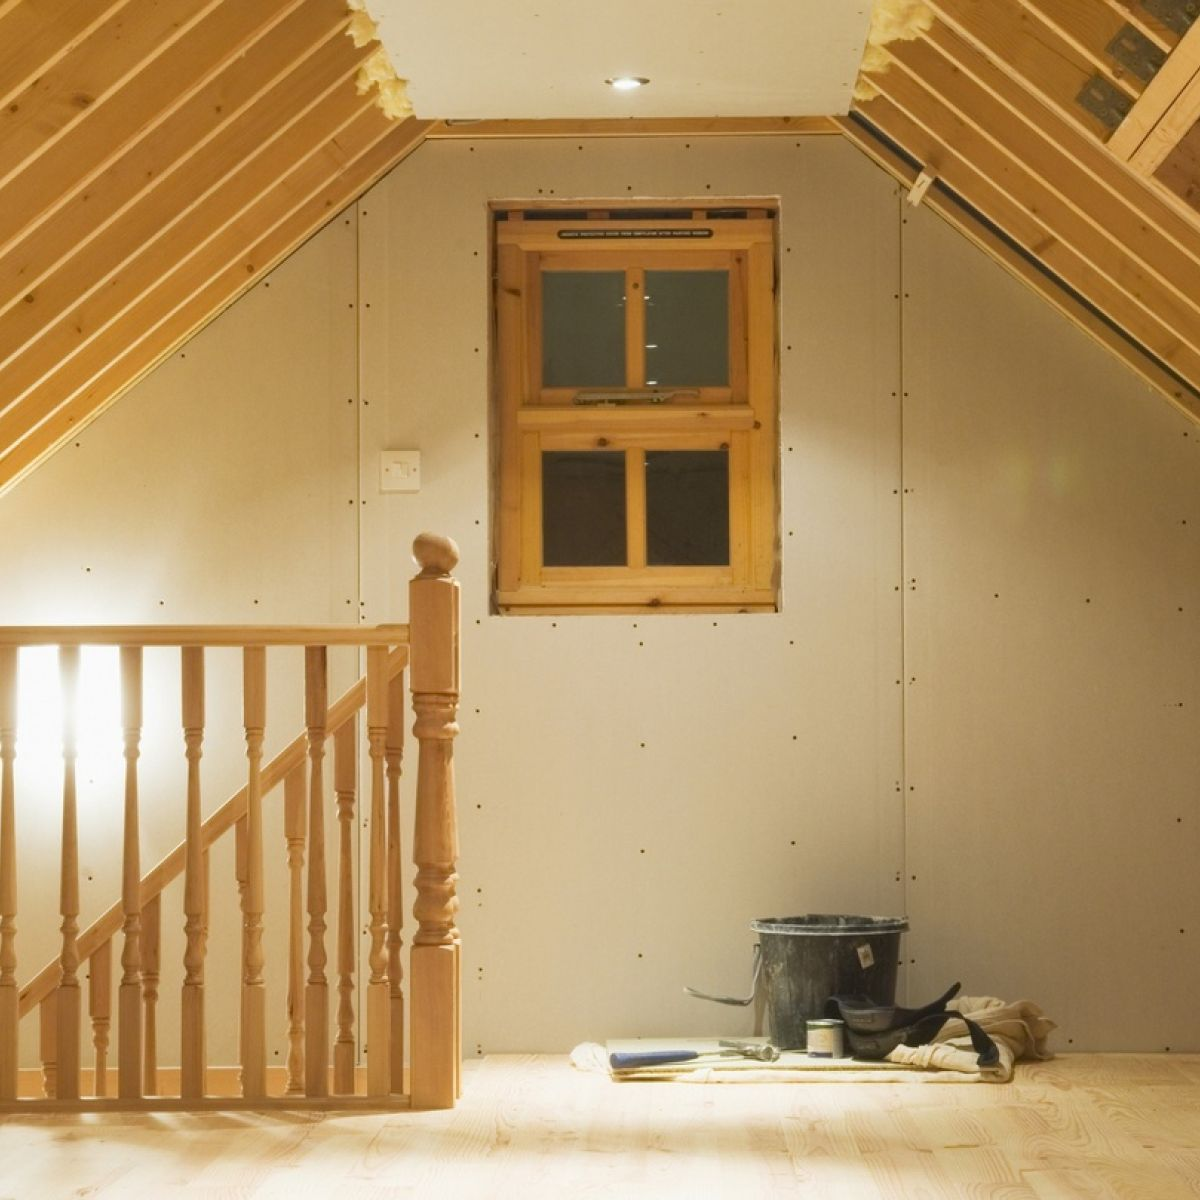 We have no paperwork to show for our attic conversion, will it ...